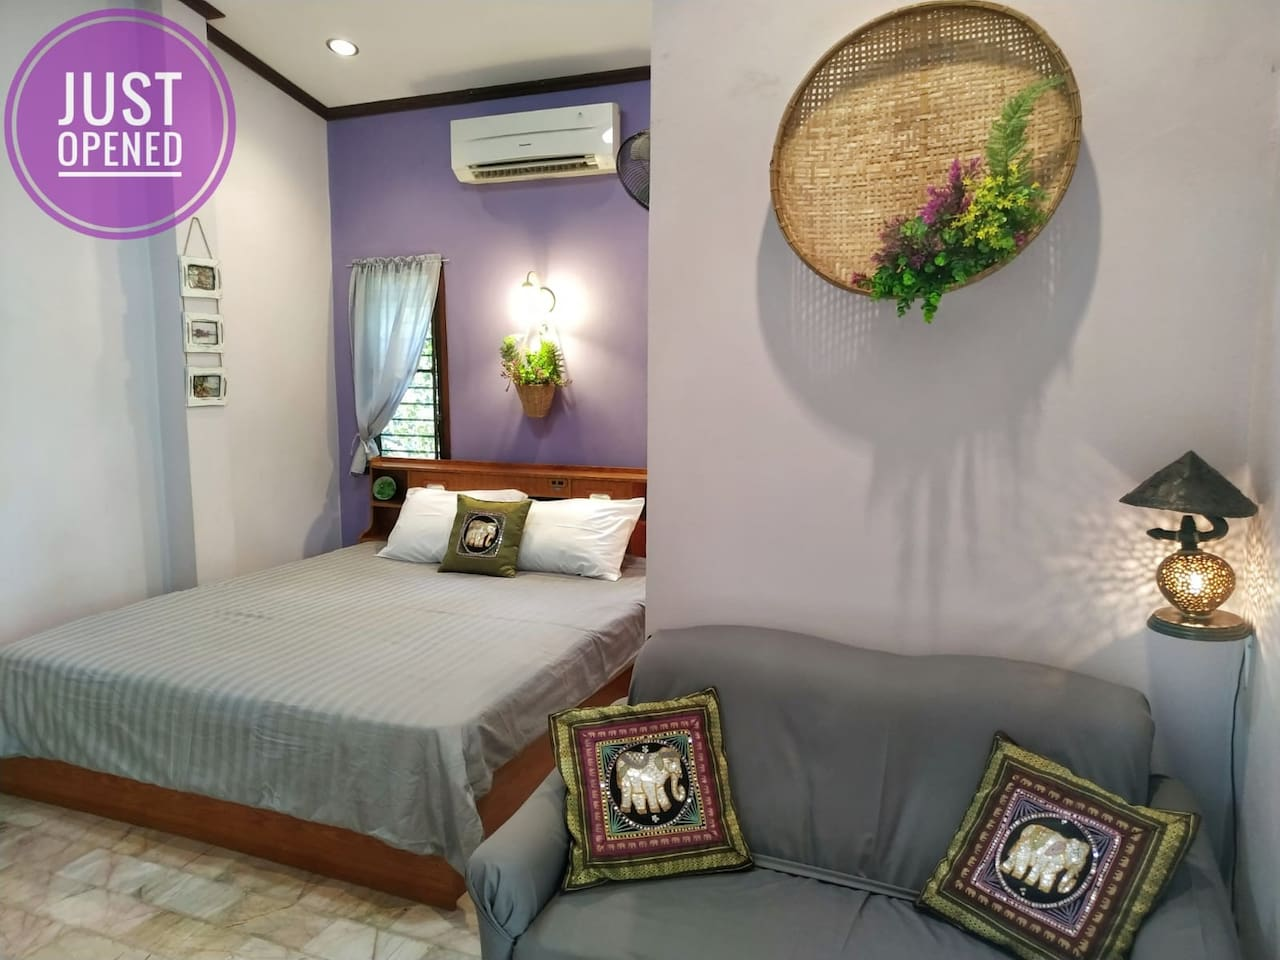 King size bed with aircon and fan available. All windows can open and are also mosquito net protected.